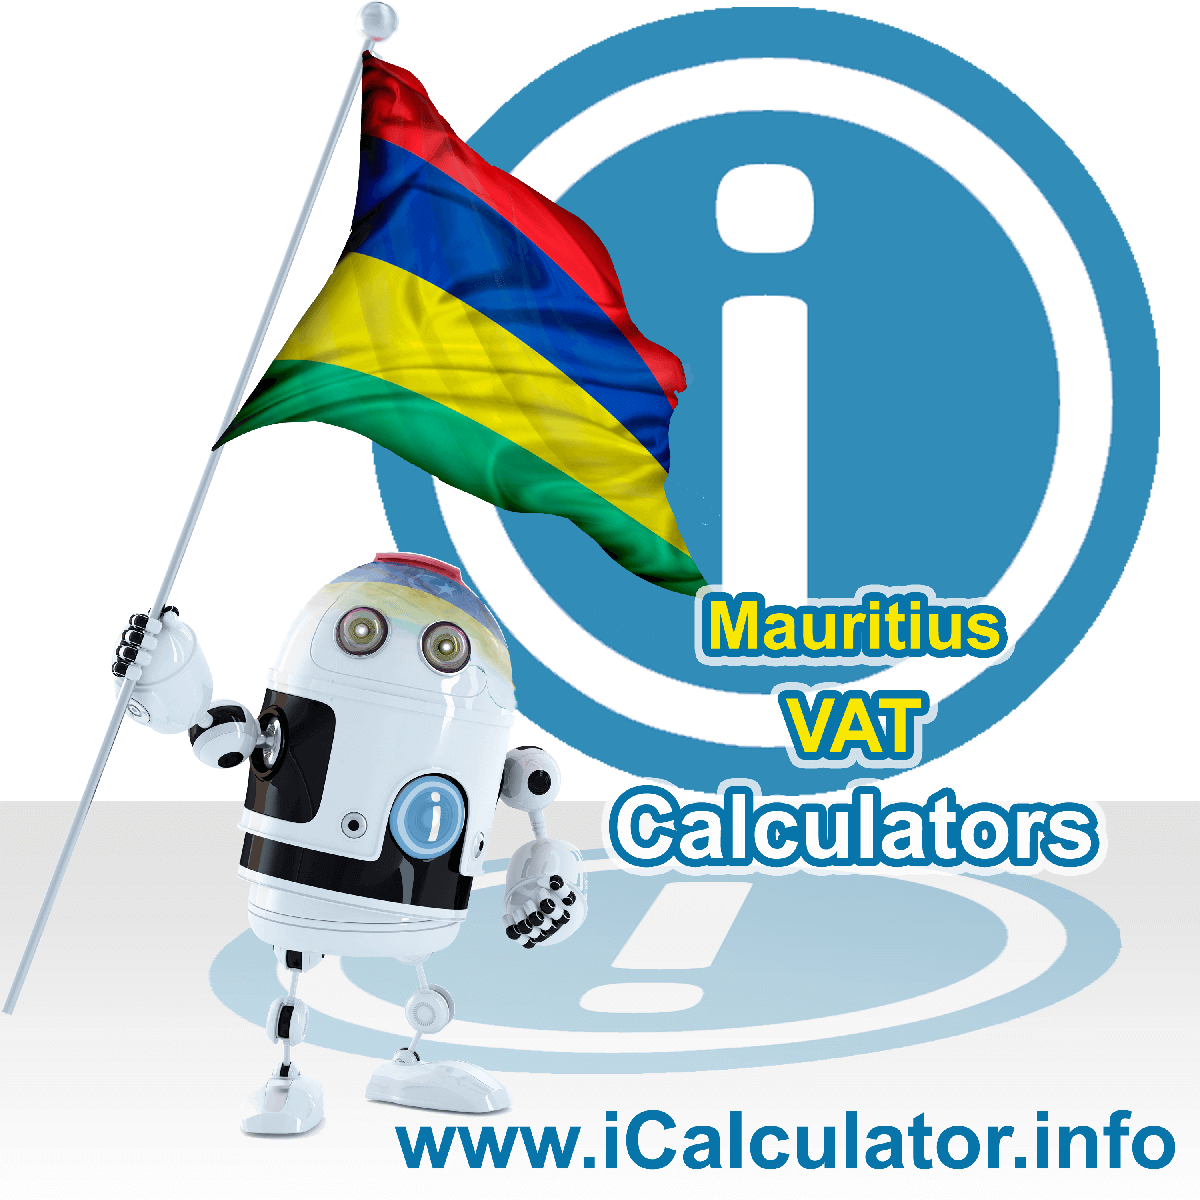 Mauritius VAT Calculator. This image shows the Mauritius flag and information relating to the VAT formula used for calculating Value Added Tax in Mauritius using the Mauritius VAT Calculator in 2020